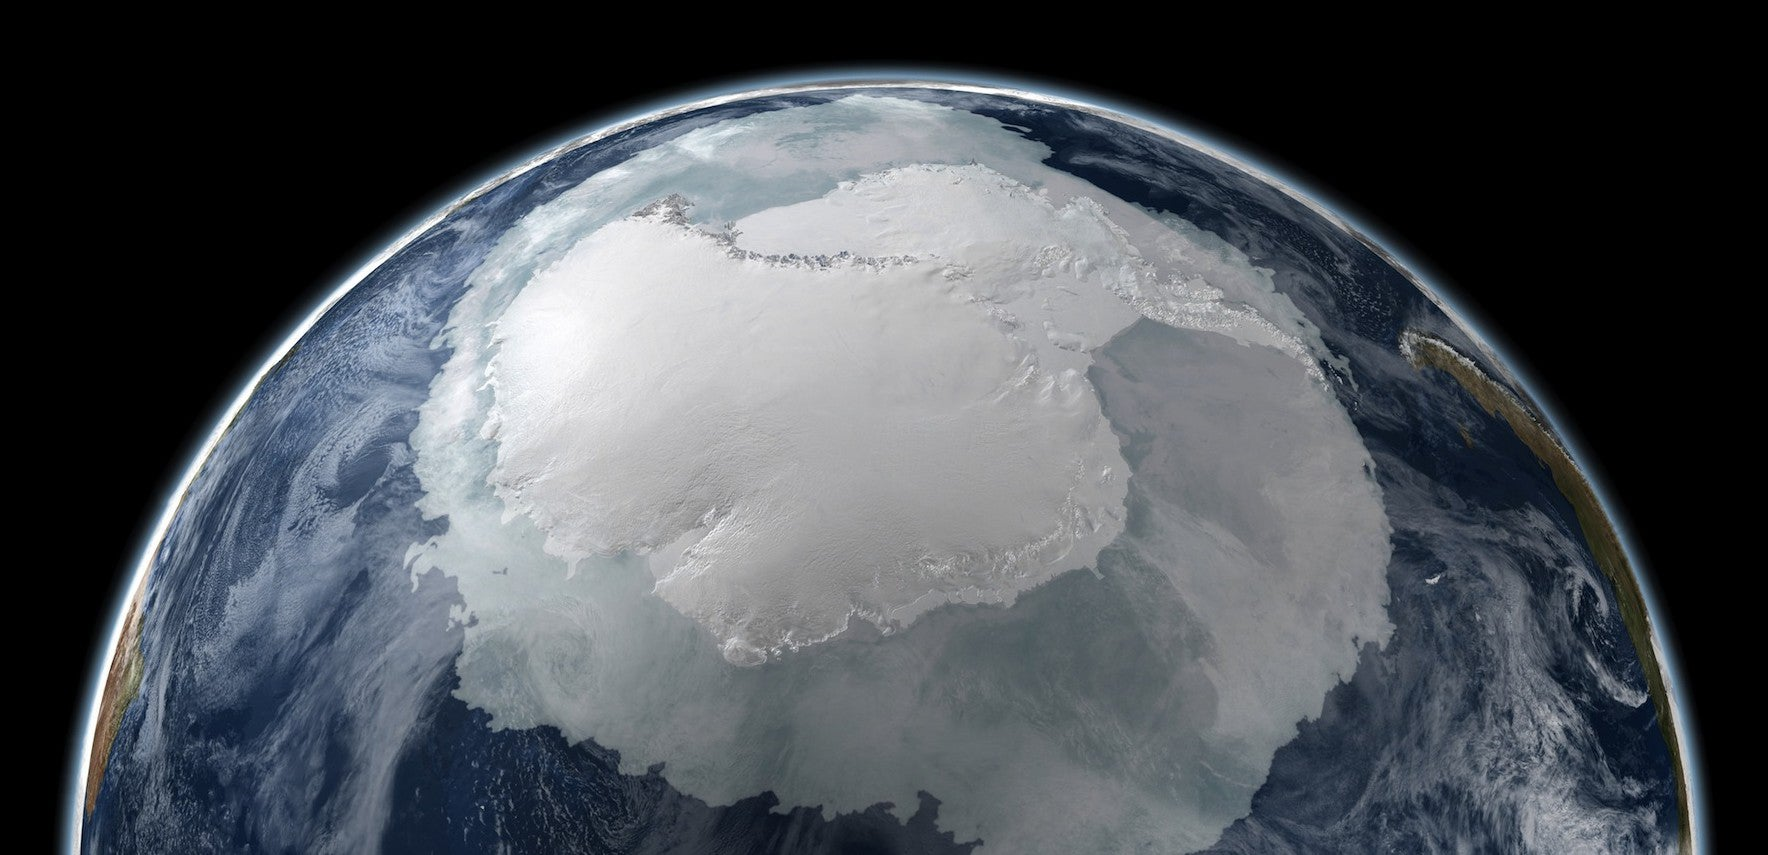 If We Burned All of Our Fossil Fuels, We'd Melt Antarctica